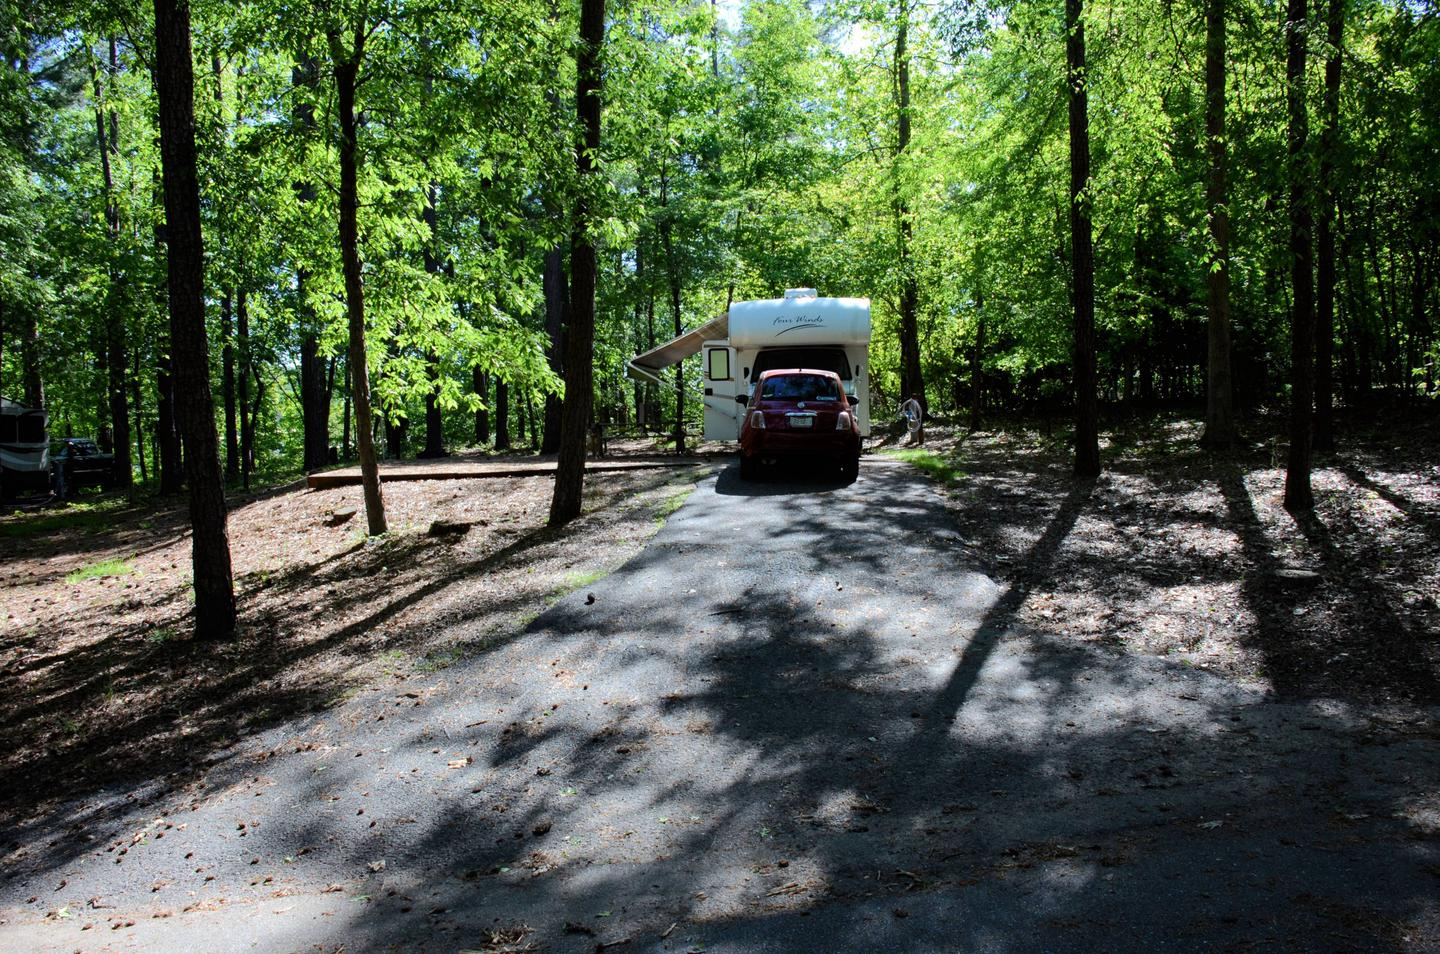 Driveway, utilities-side clearance, awning-side clearance.McKinney Campground, campsite 23.